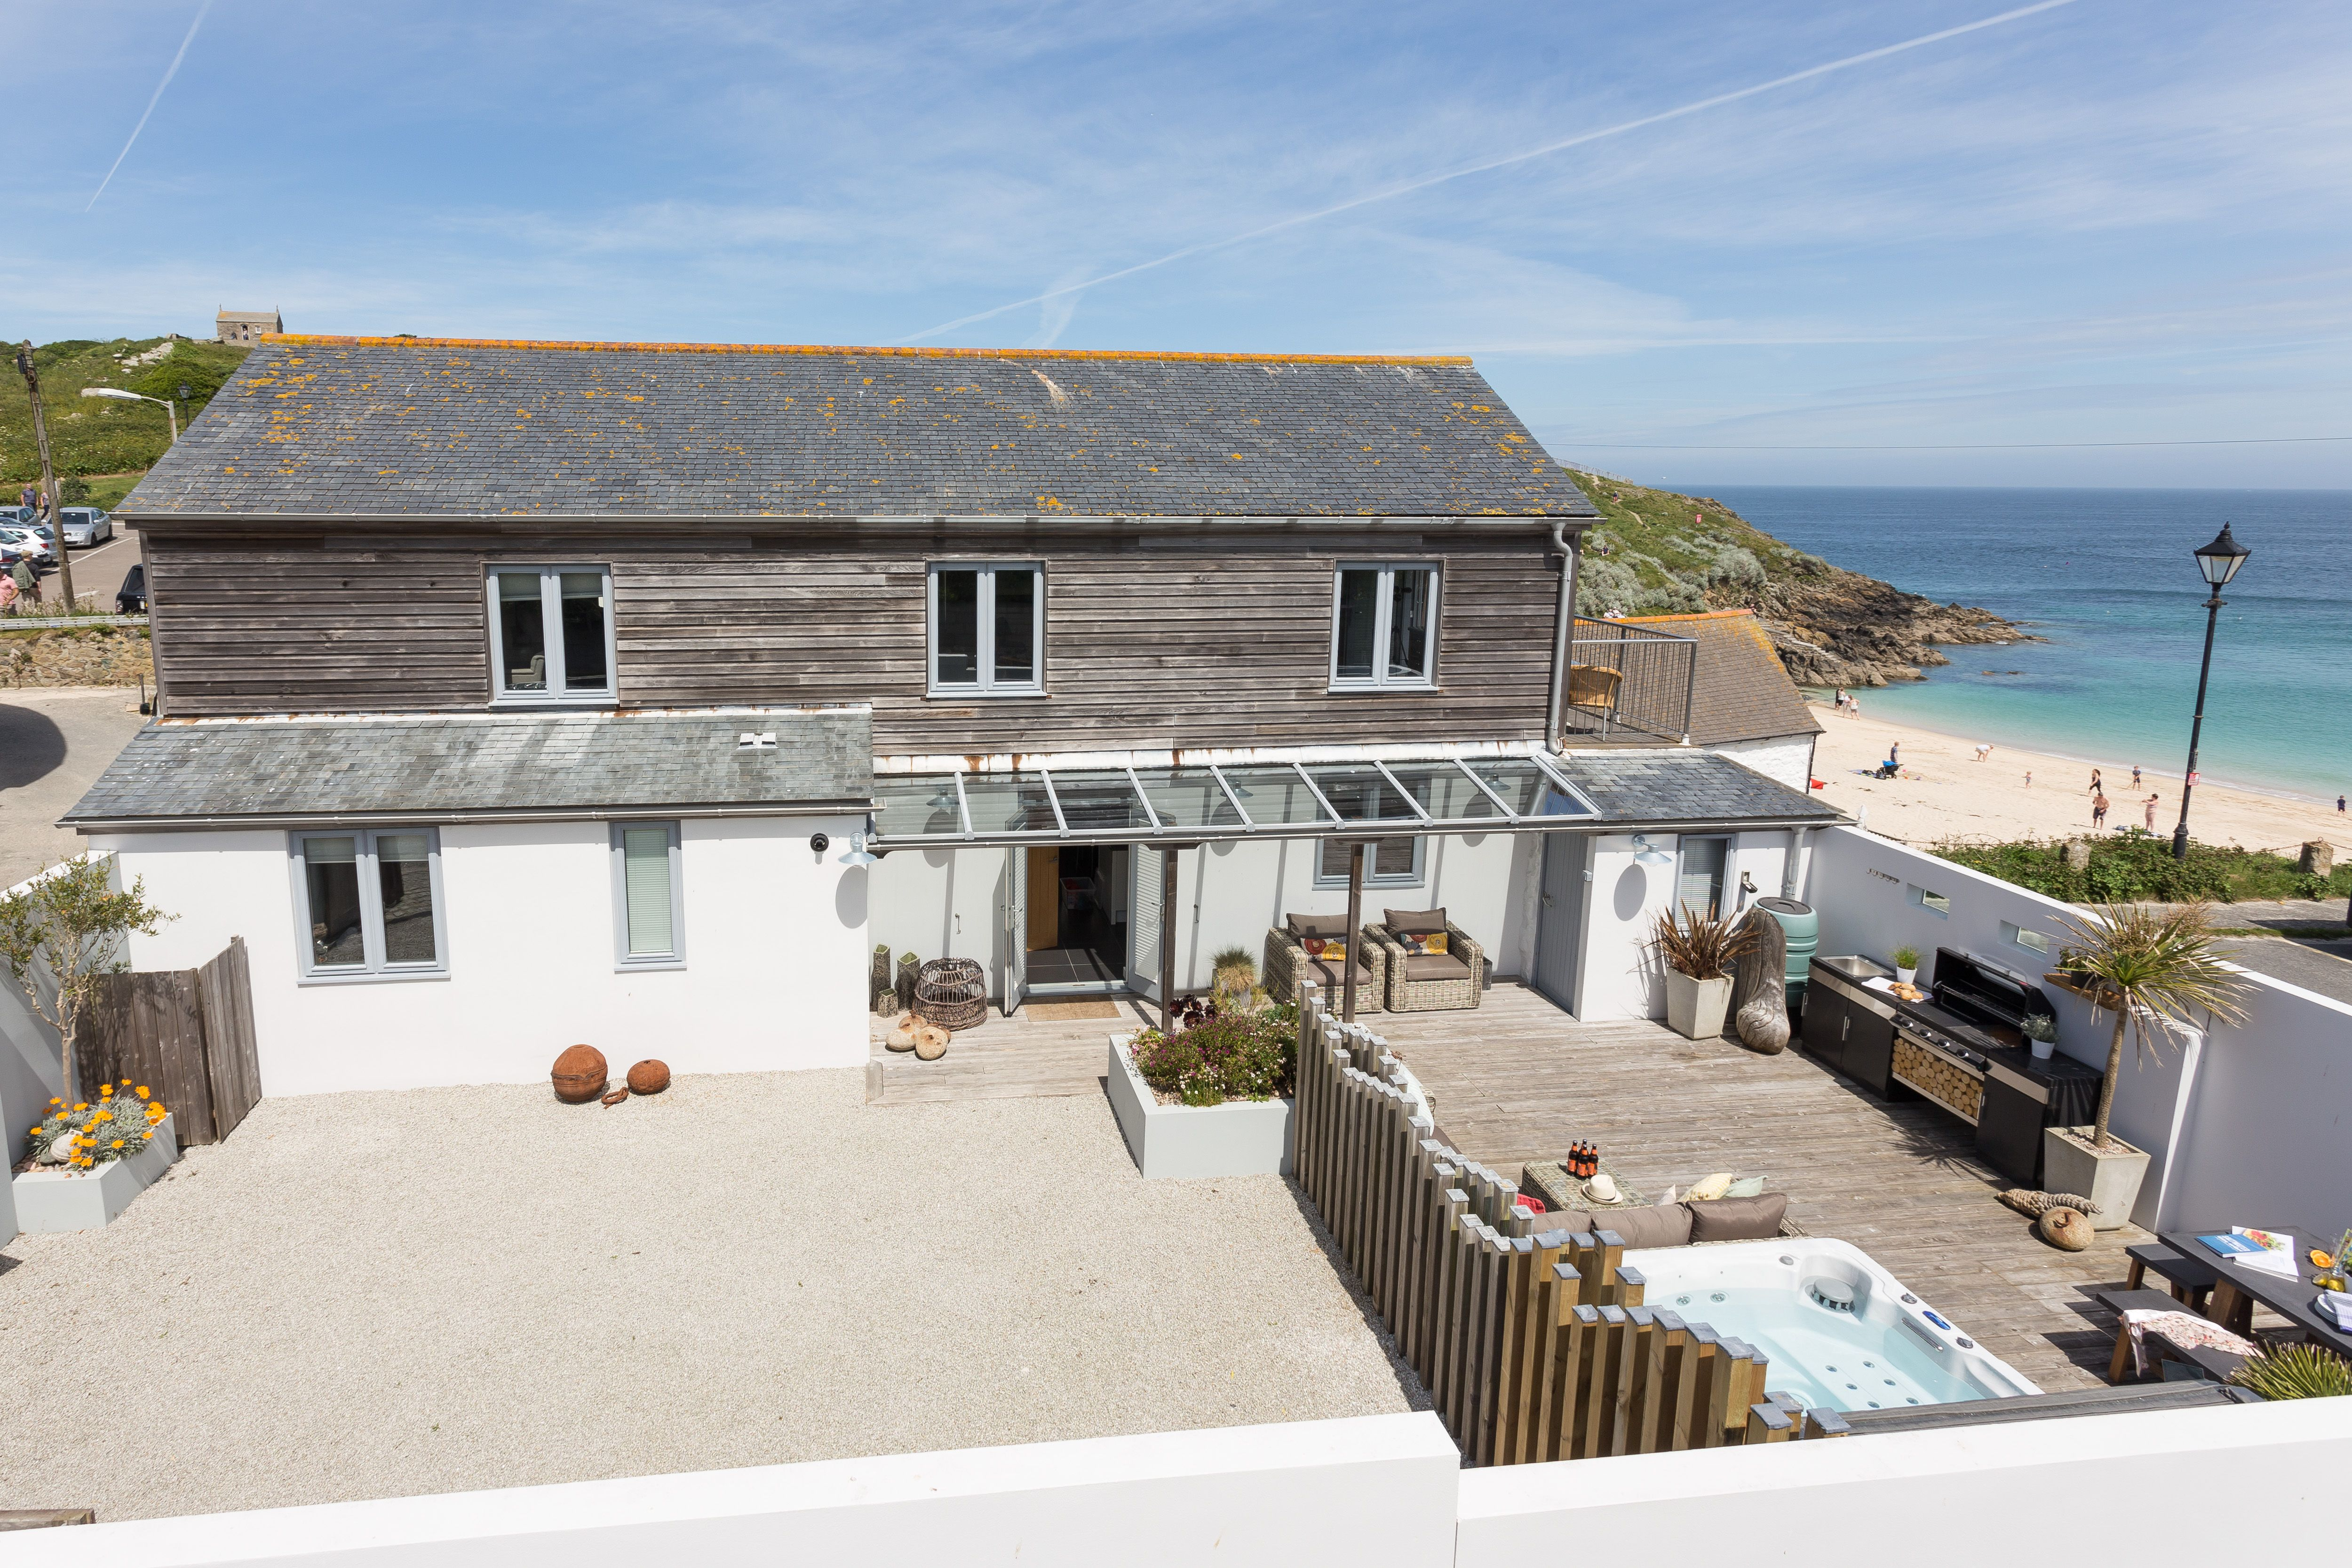 Island Wastrel St Ives Open The Gates To The Magic Of Island Wastrel And Step Into A Stunning Coastal Oasis Within Coastal Oasis Holiday Home Holiday Cottage